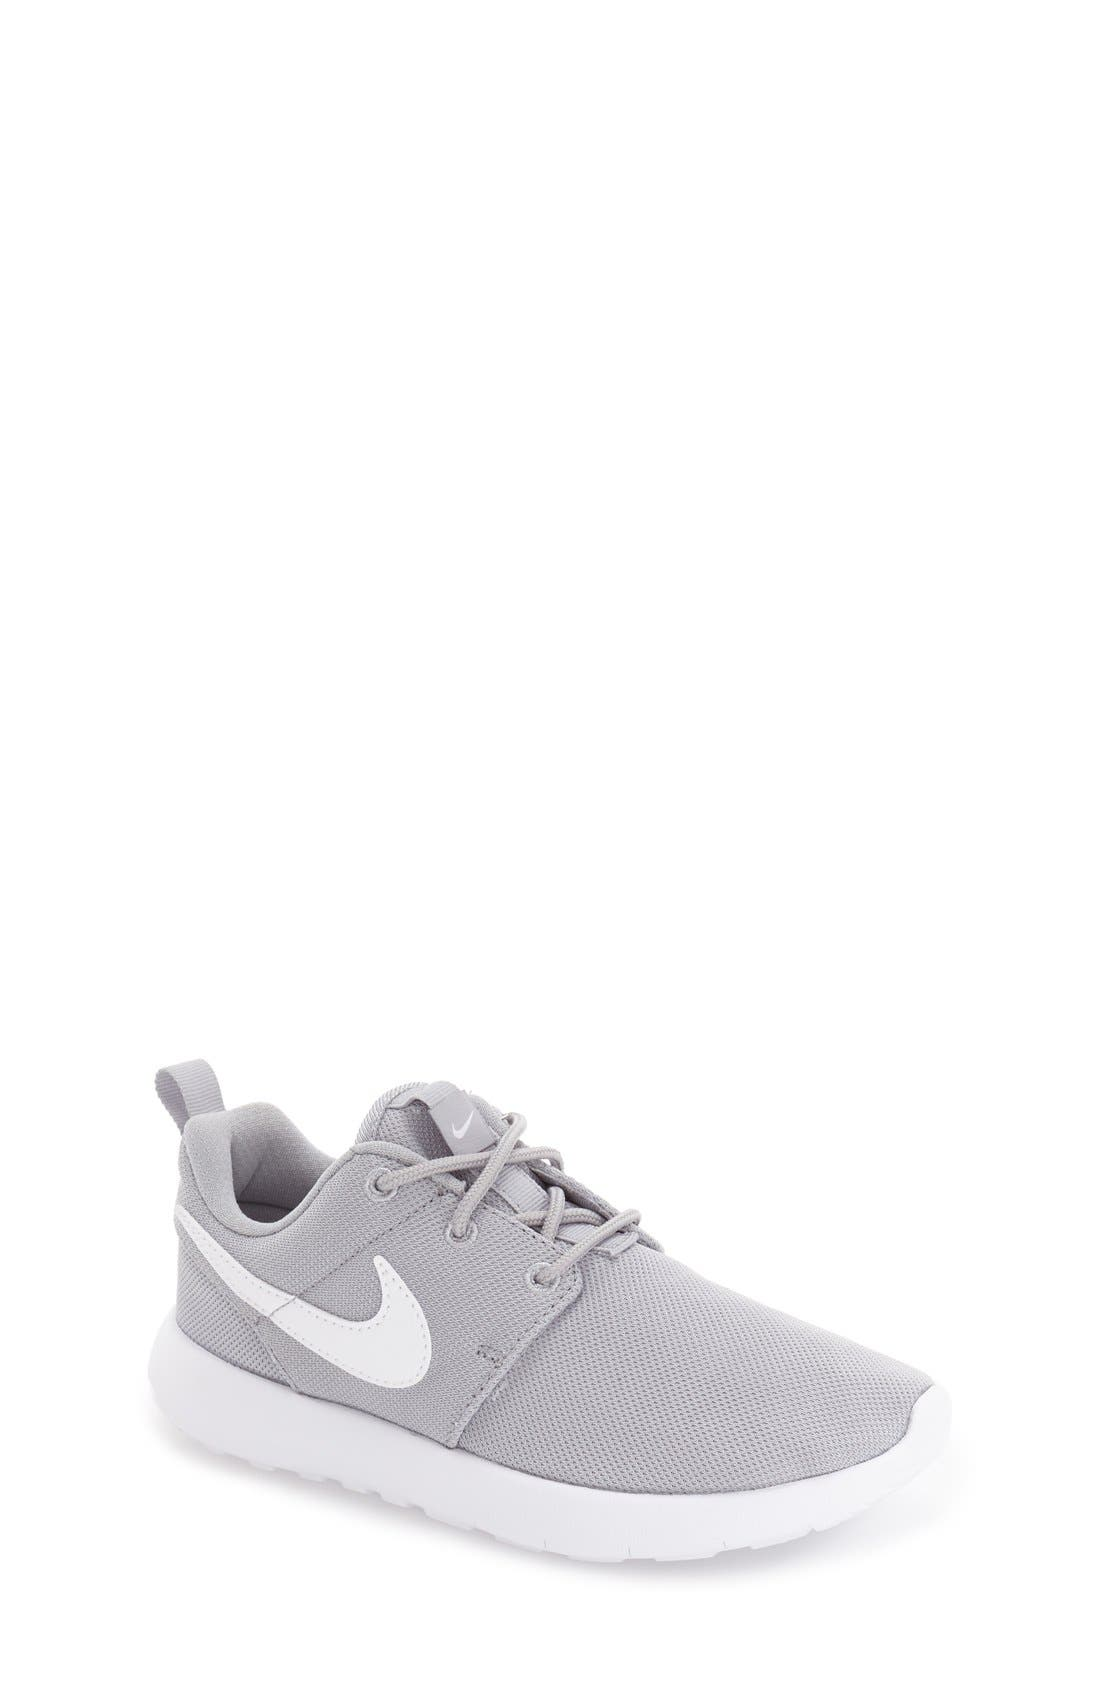 Roshe Run Sneaker,                             Main thumbnail 10, color,